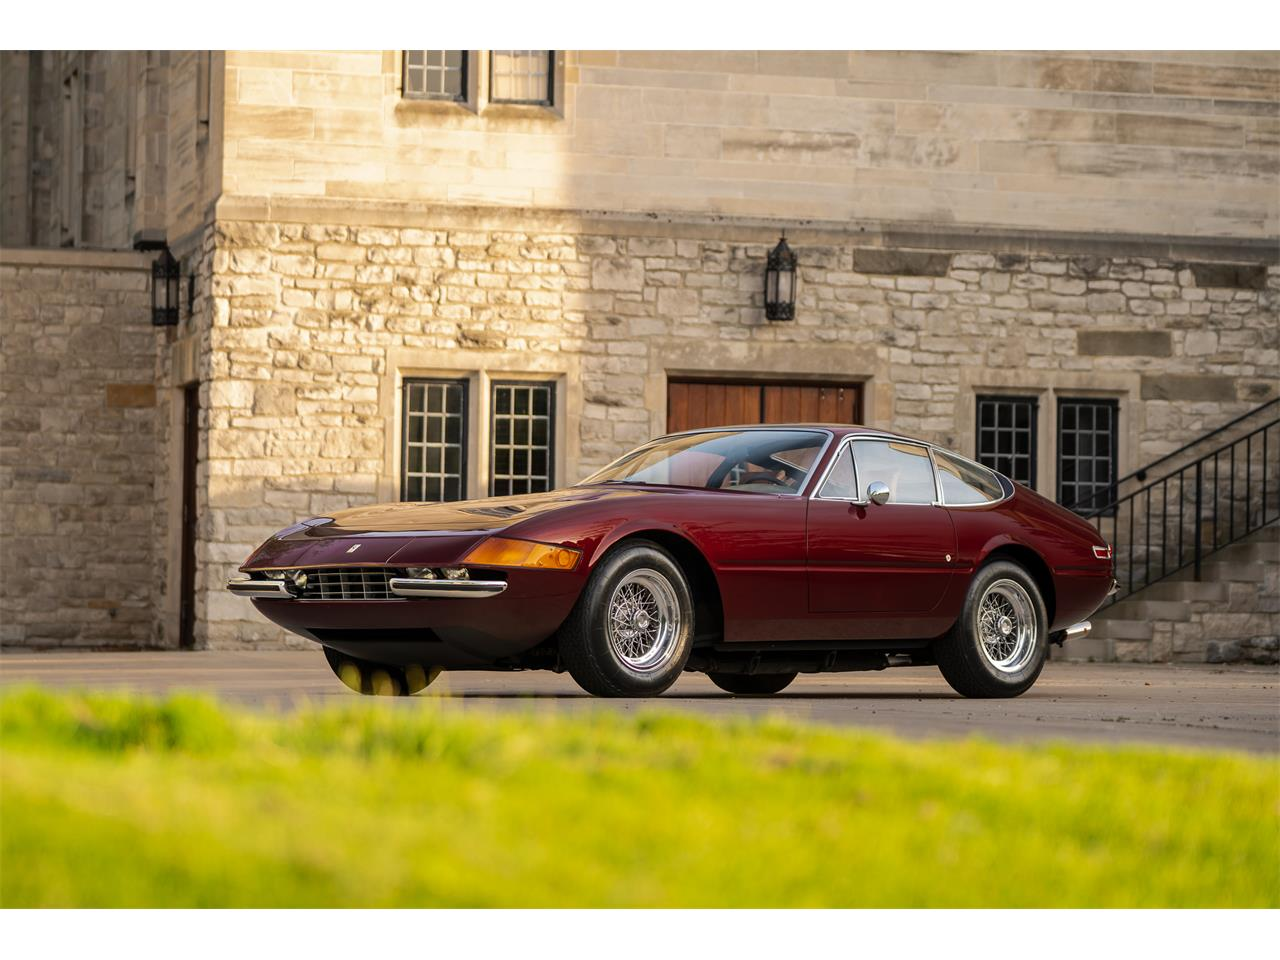 Large Picture of Classic '72 365 GTB/4 Daytona located in Pontiac Michigan Offered by LBI Limited - QL32